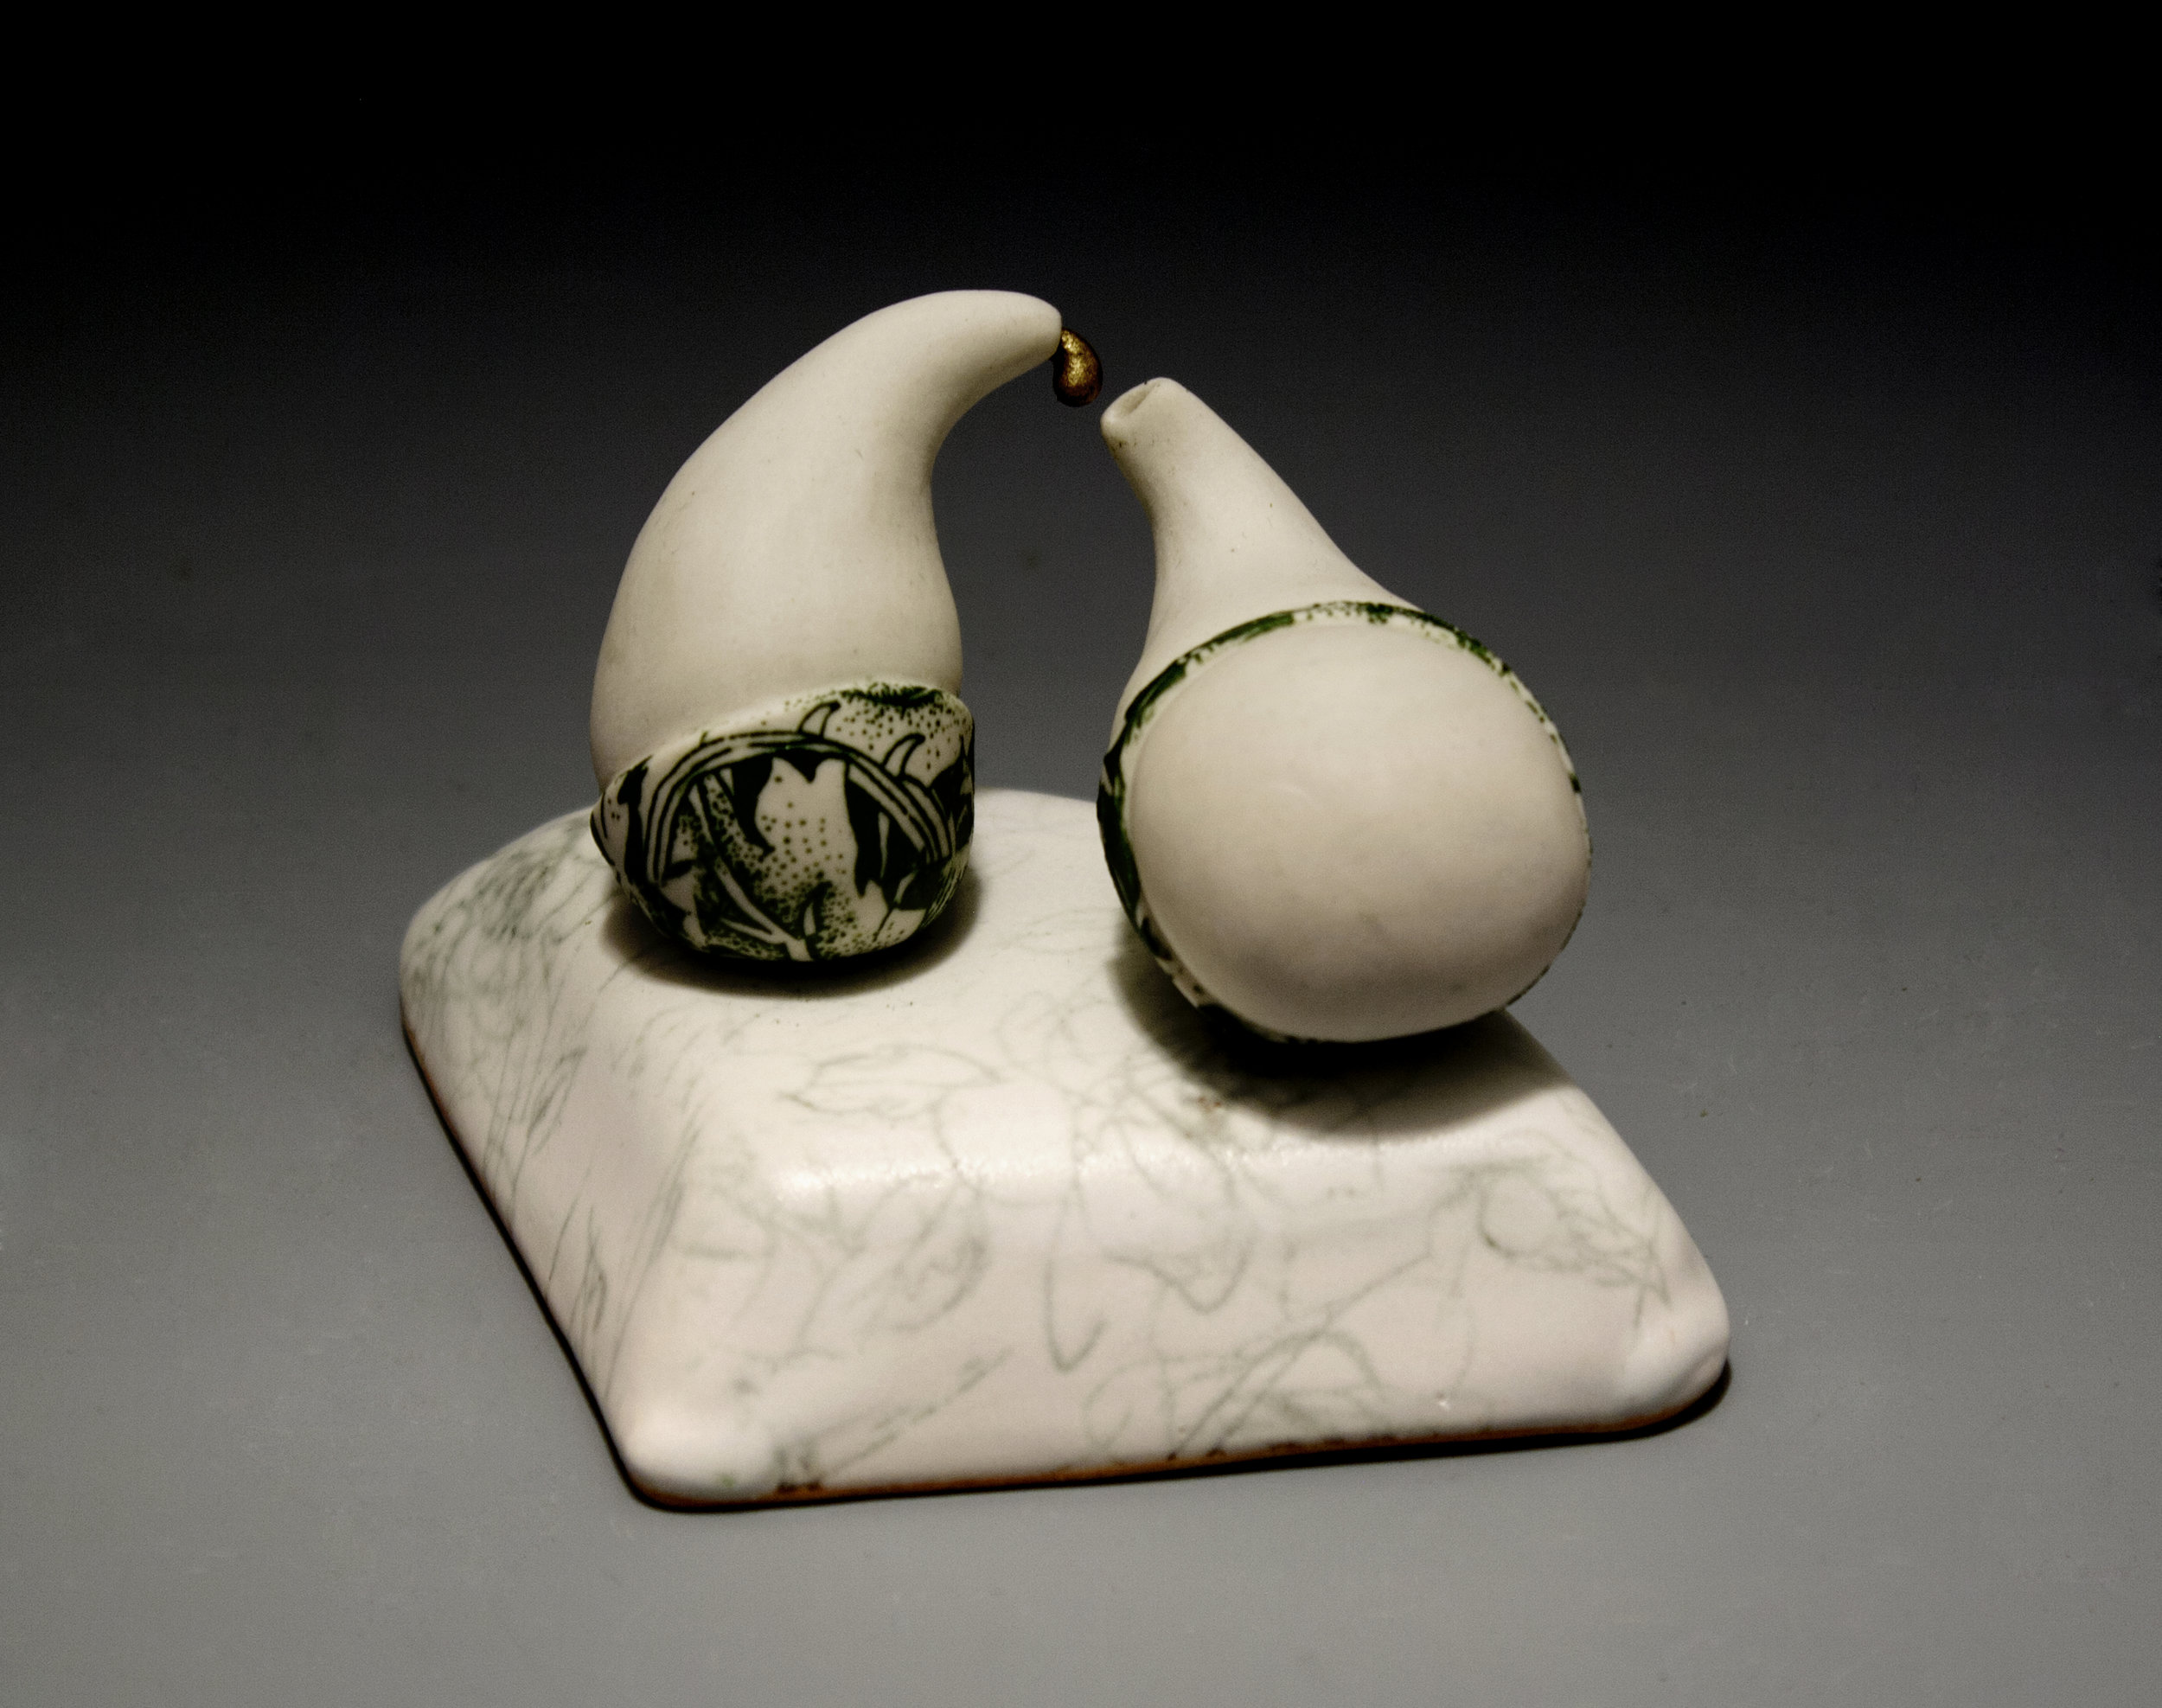 """Enticement"" by Amy Chase, 3x4x3in, Porcelain, Underglaze, Luster"